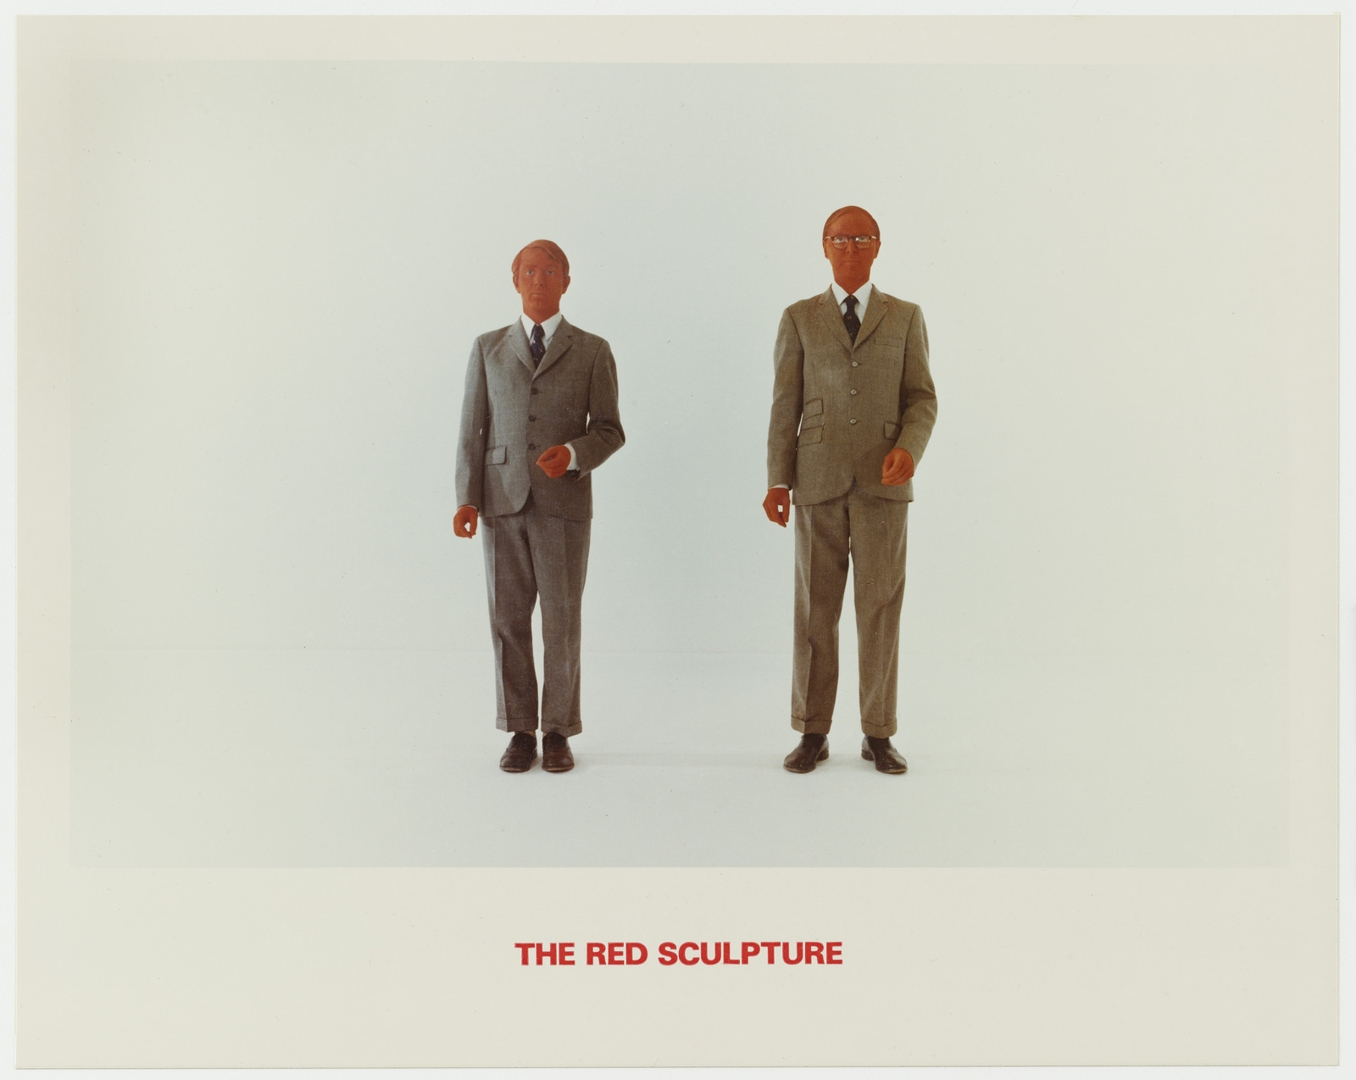 The Red Sculpture. 1975 image